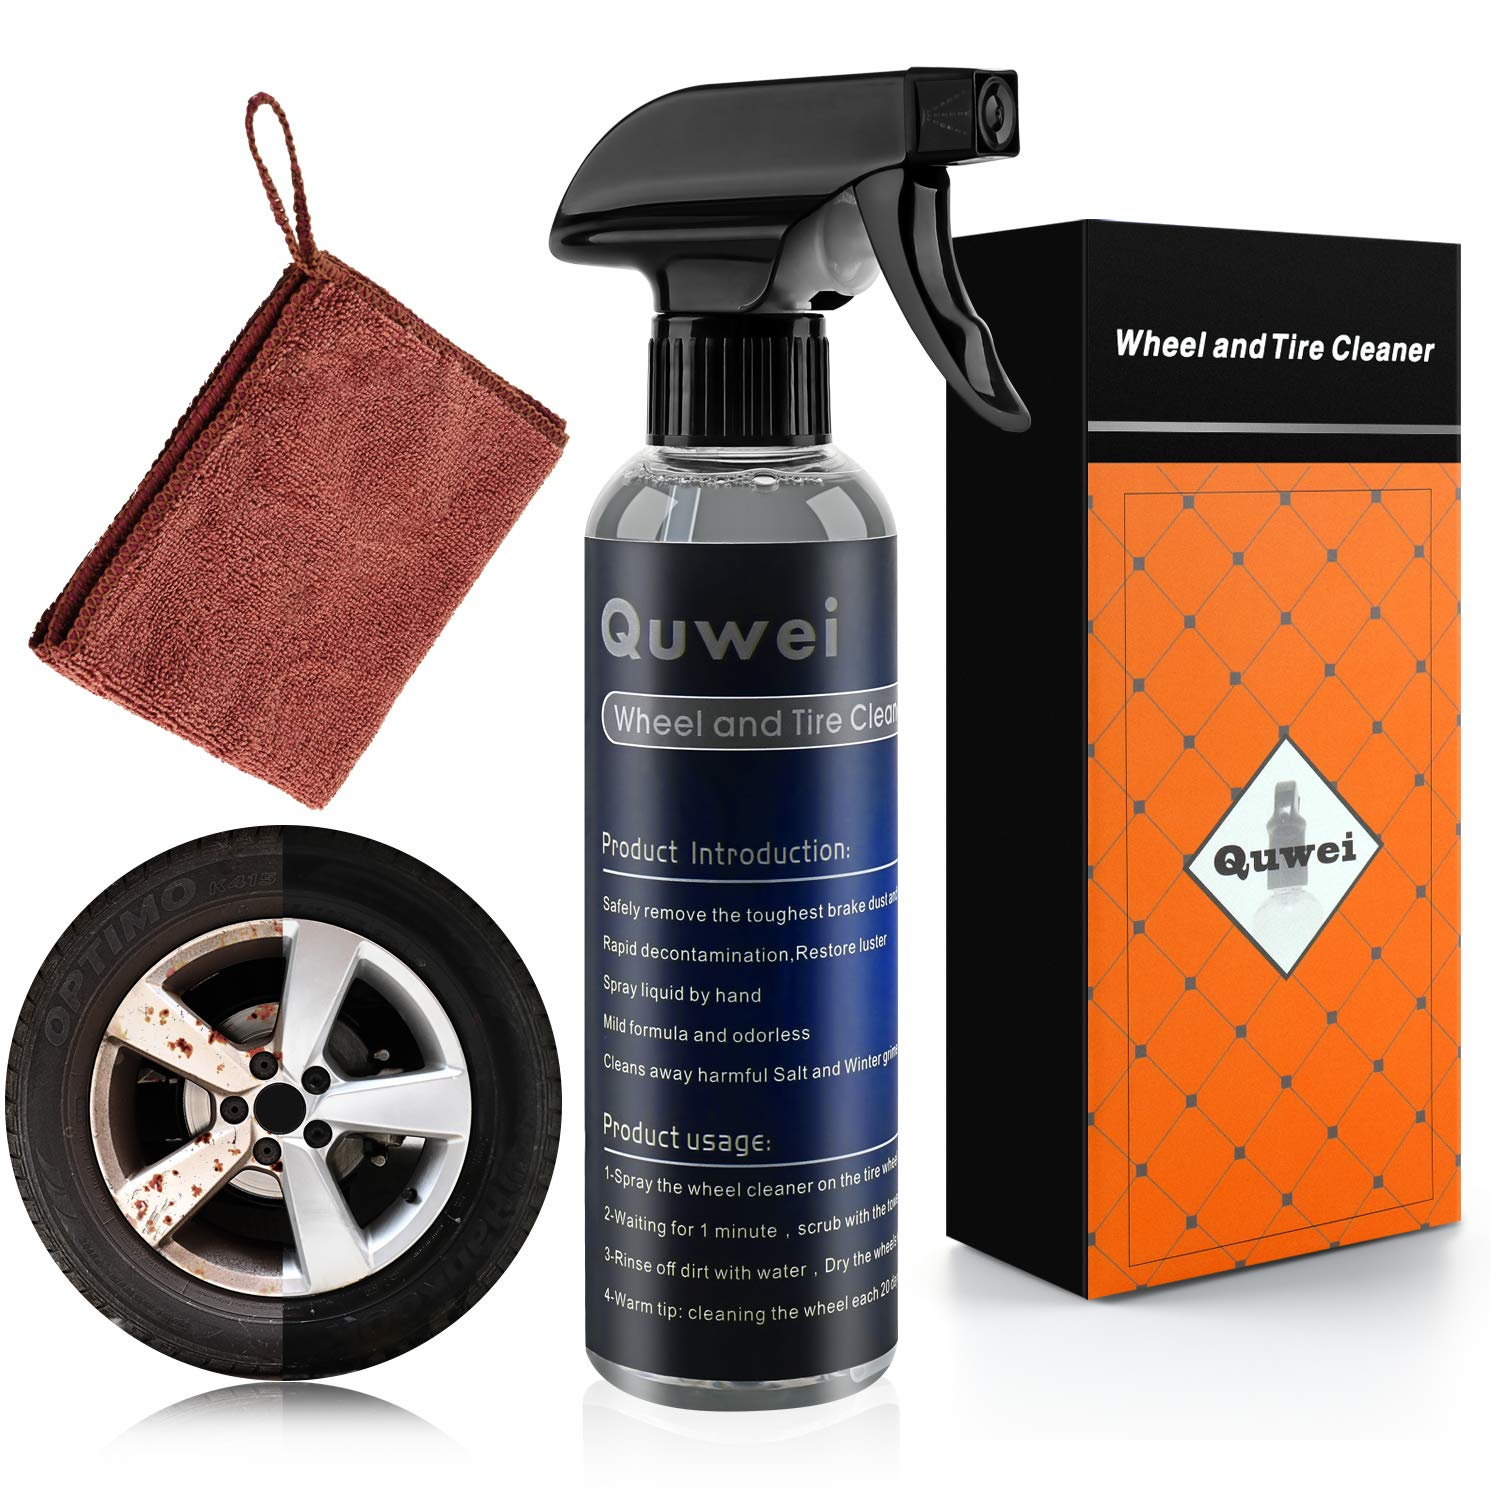 Quwei Wheel and Tire Cleaner - car Wheel Cleaner - Wheel and tire Cleaner kit - Safe decontamination Cleaning Rust Remover Iron Removal Alloy Wheel Cleaner Chrome Aluminum Clear Oxide Ring